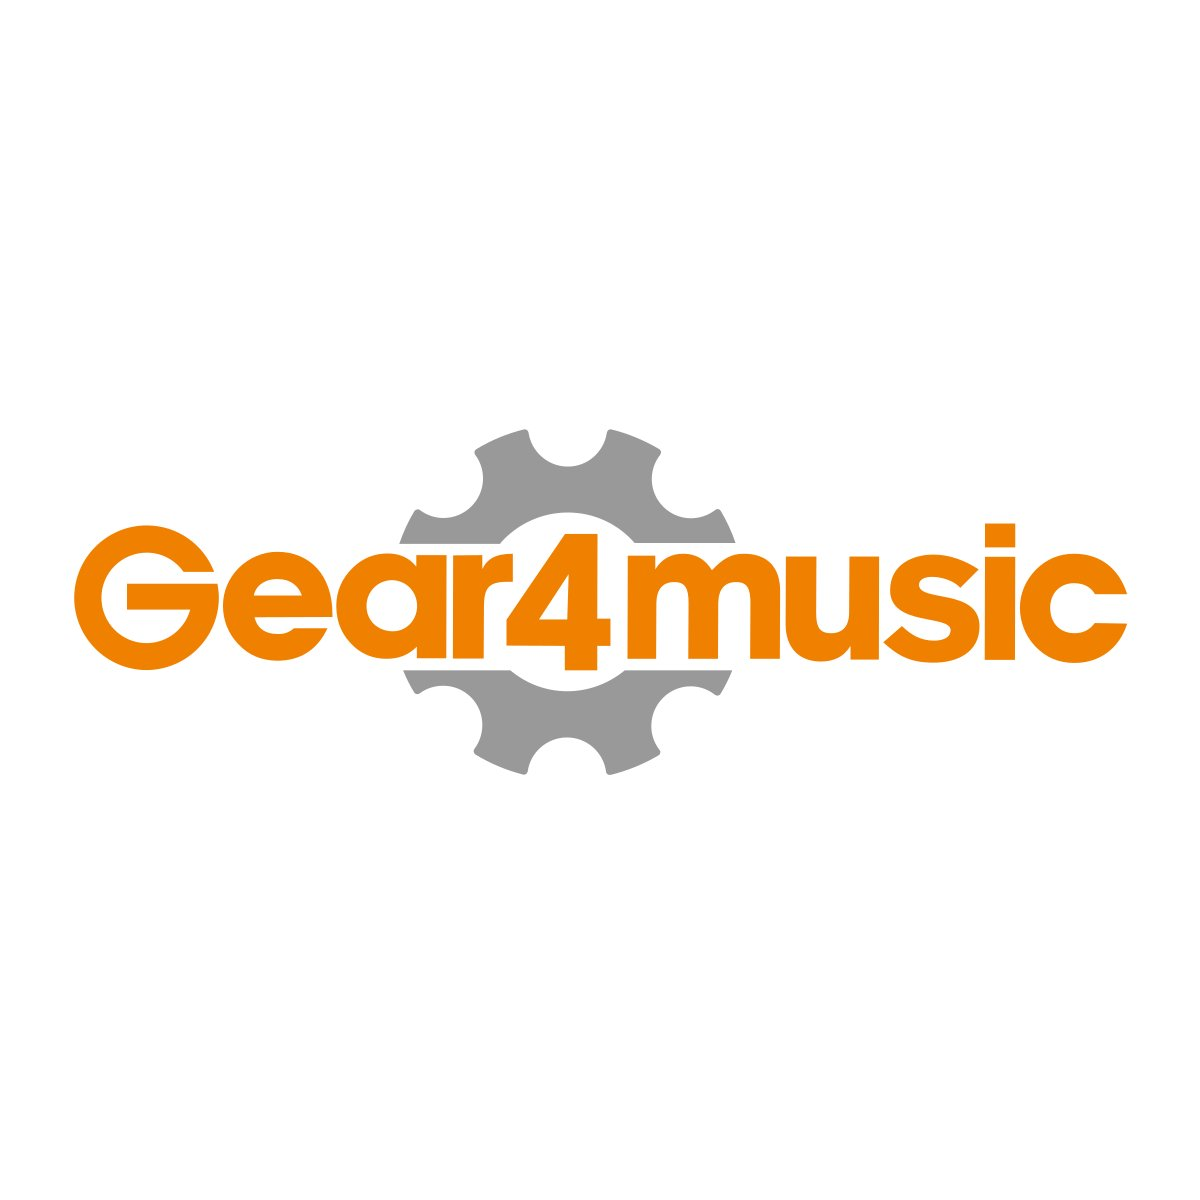 Cor double par Gear4music